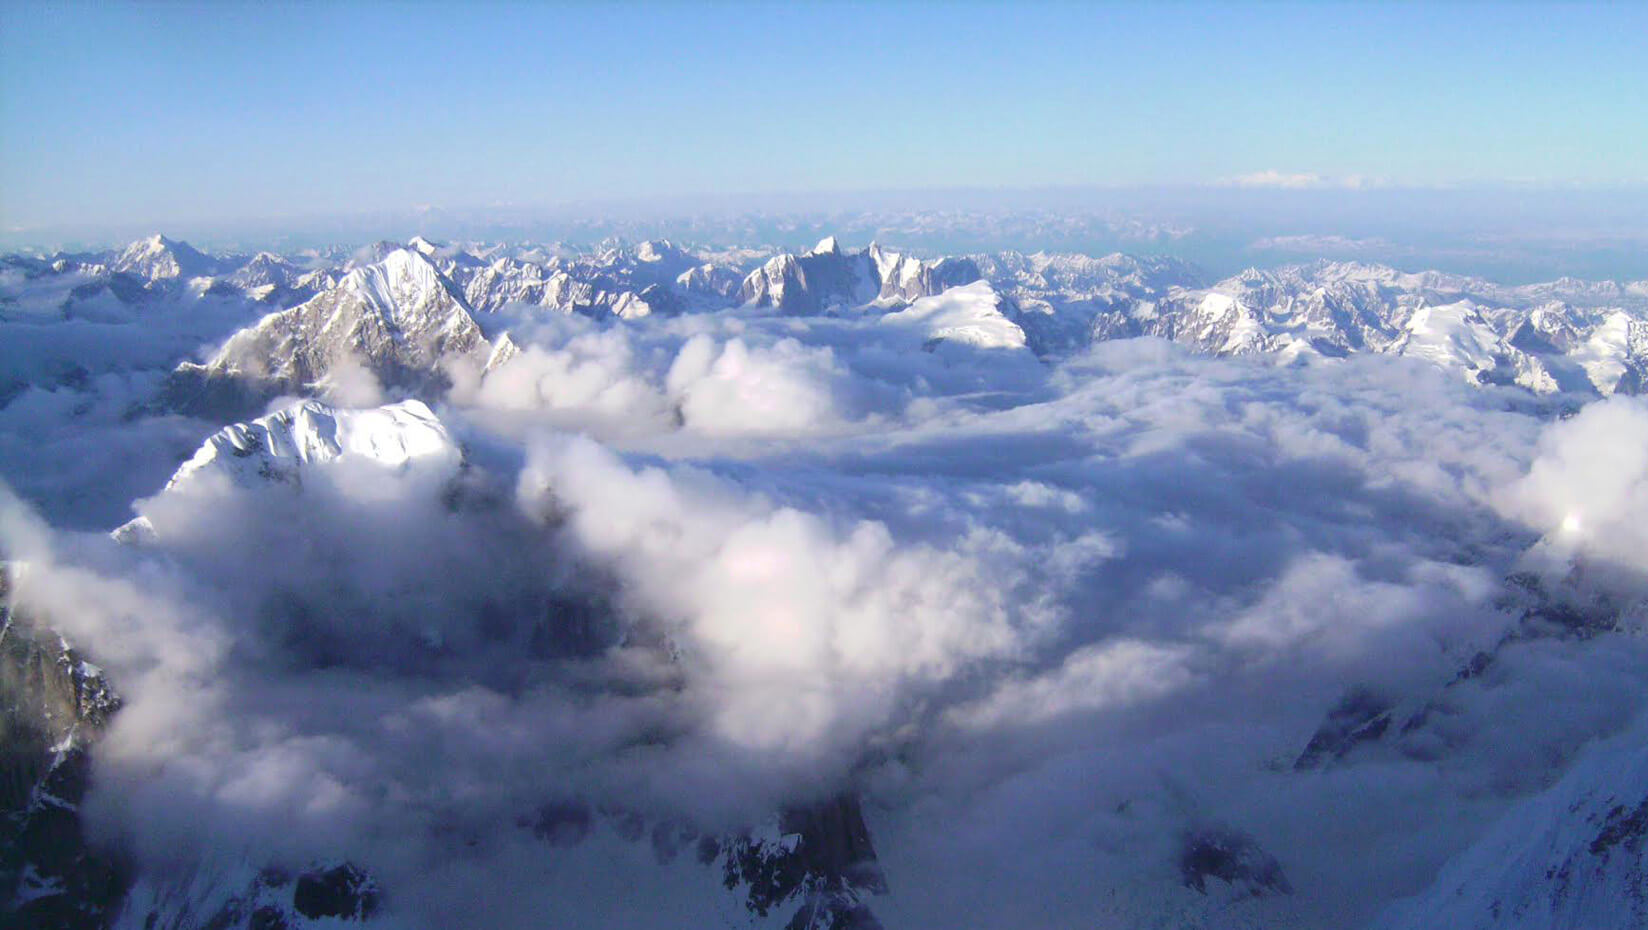 Mountian peaks in the clouds